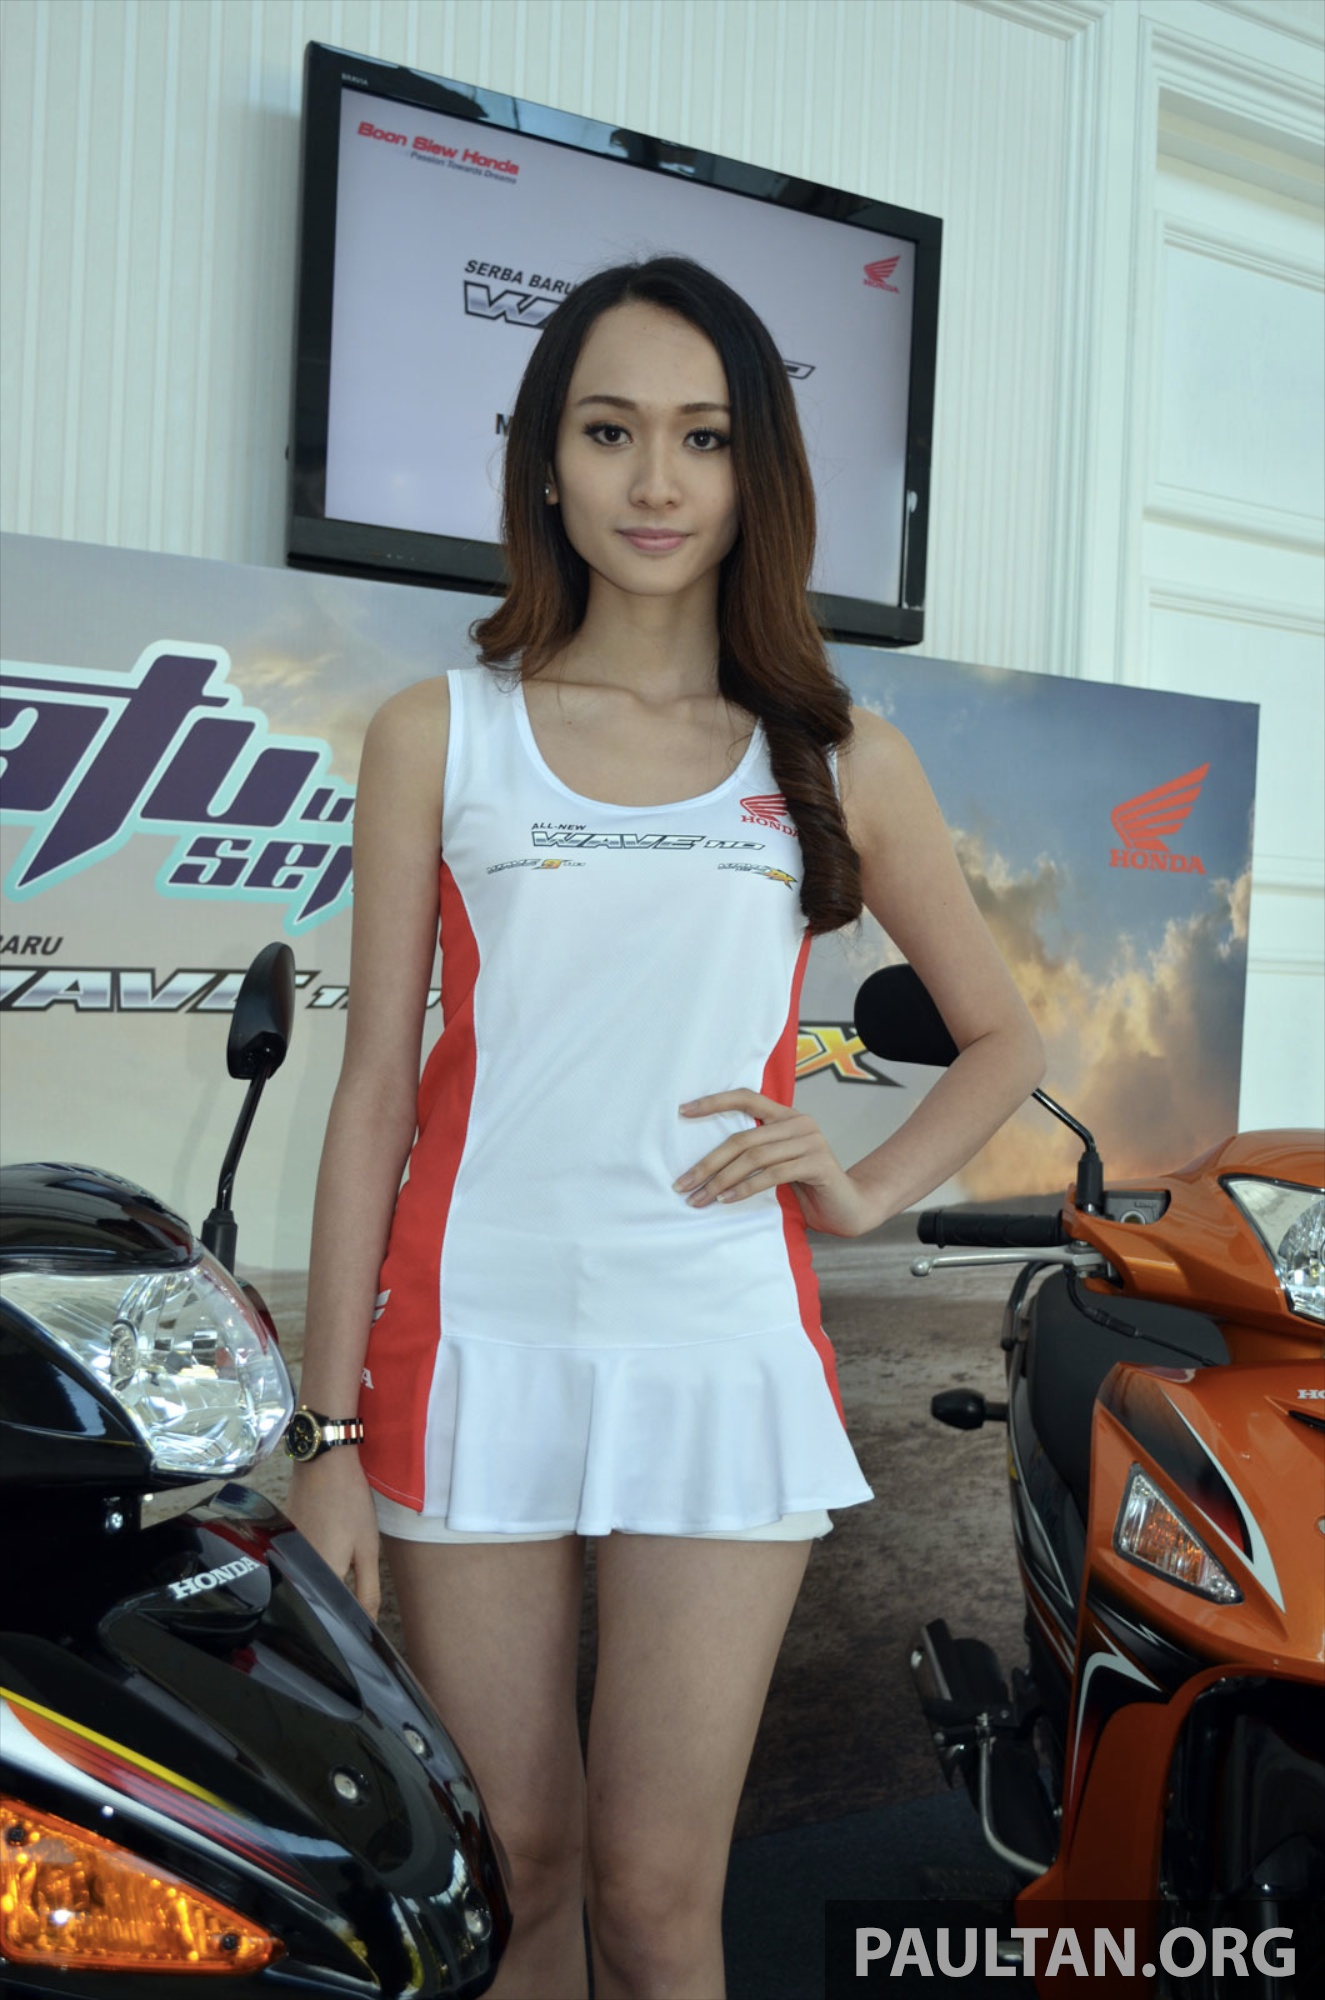 New Honda Wave 110 Kapcai Launched By Boon Siew Image 176738